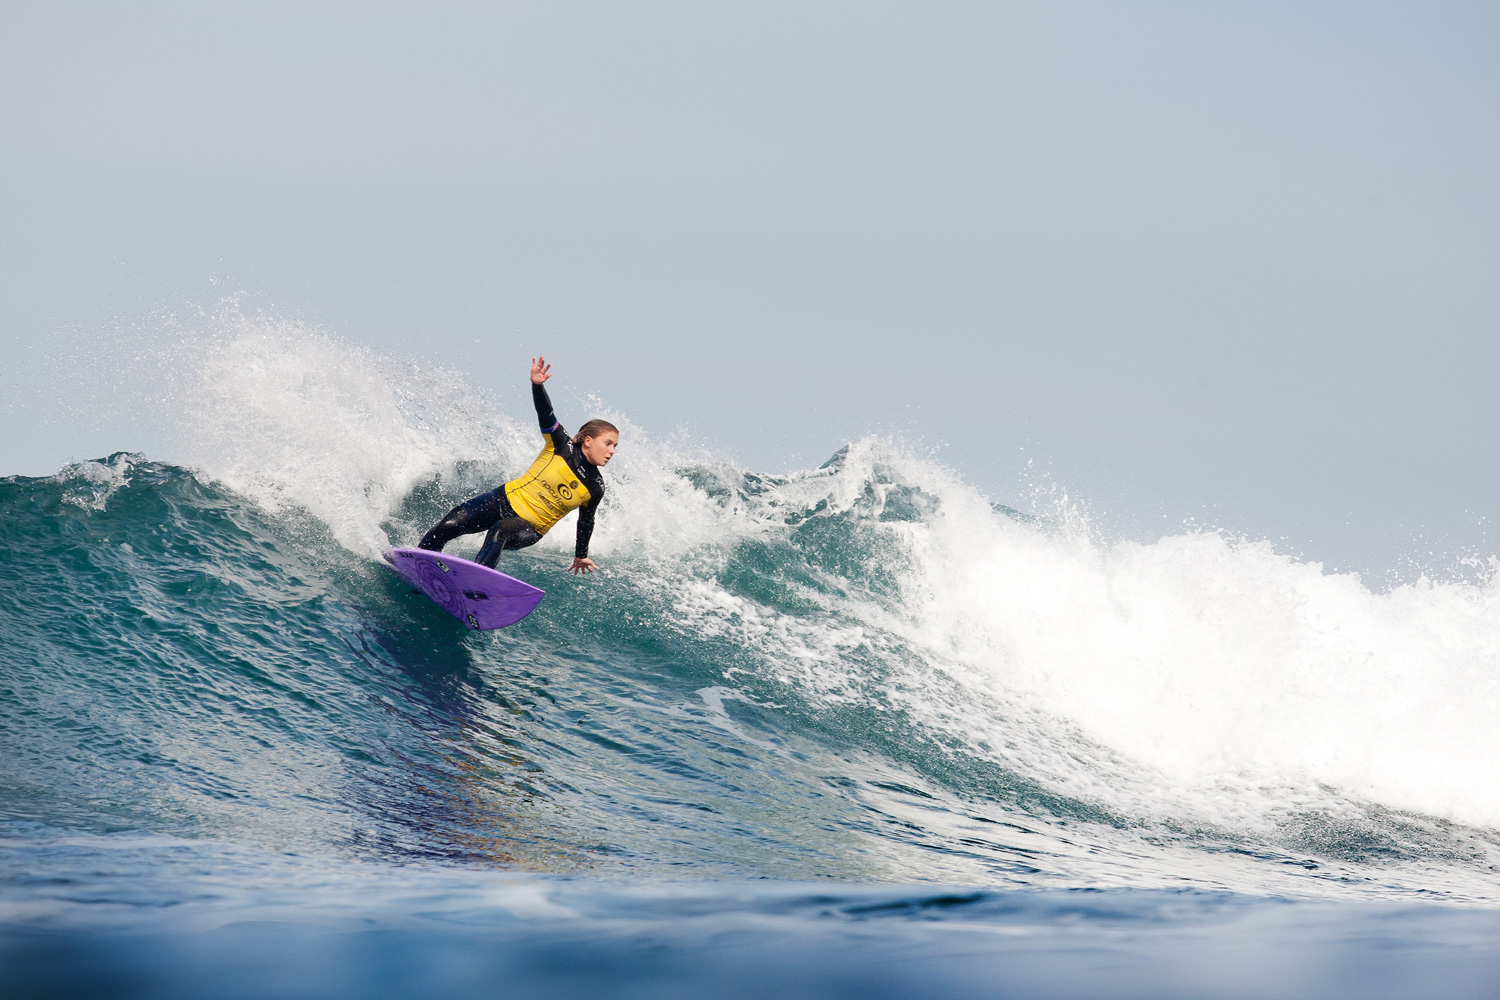 Dimity Stoyle of Australia advances into Round 3 of the Rip Curl Pro Bells Beach with her breakout performance.